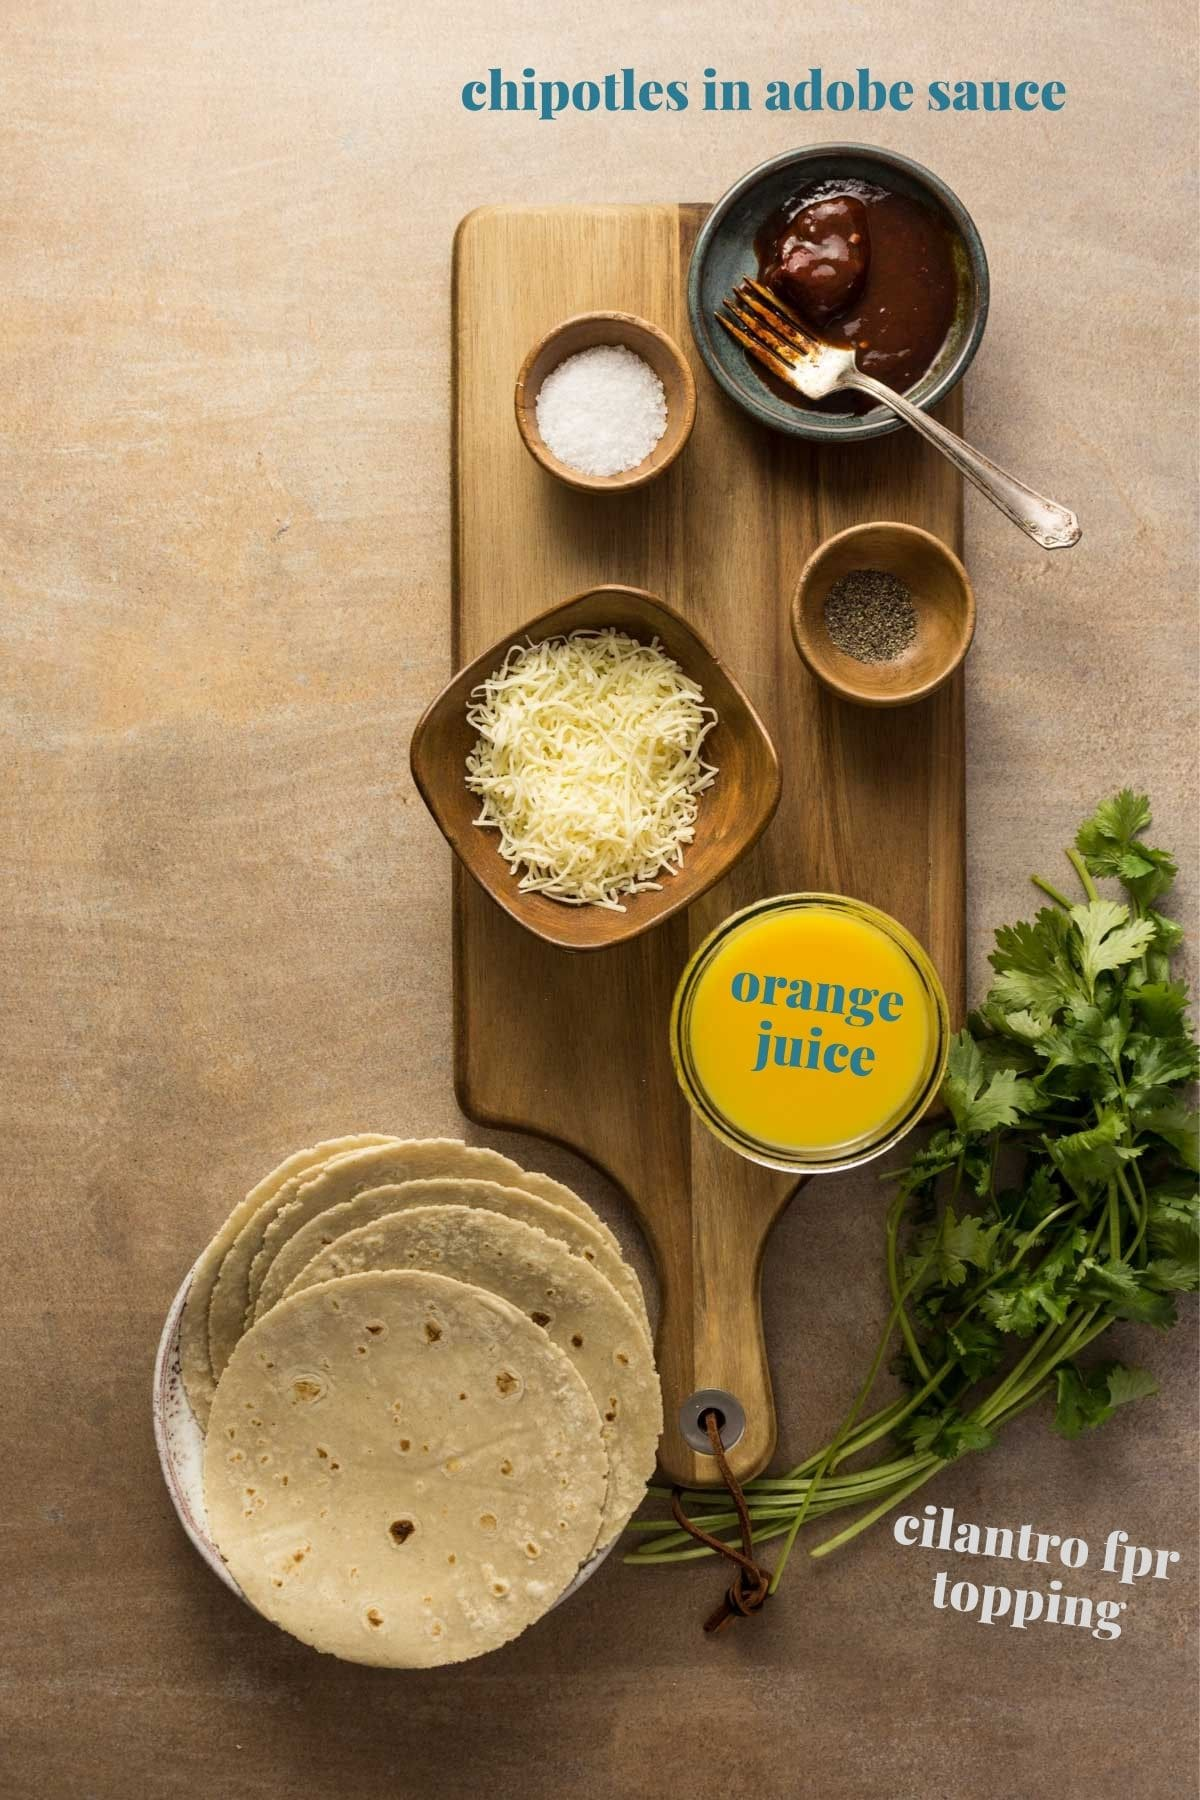 Chipotle orange taco ingredients on a wooden board